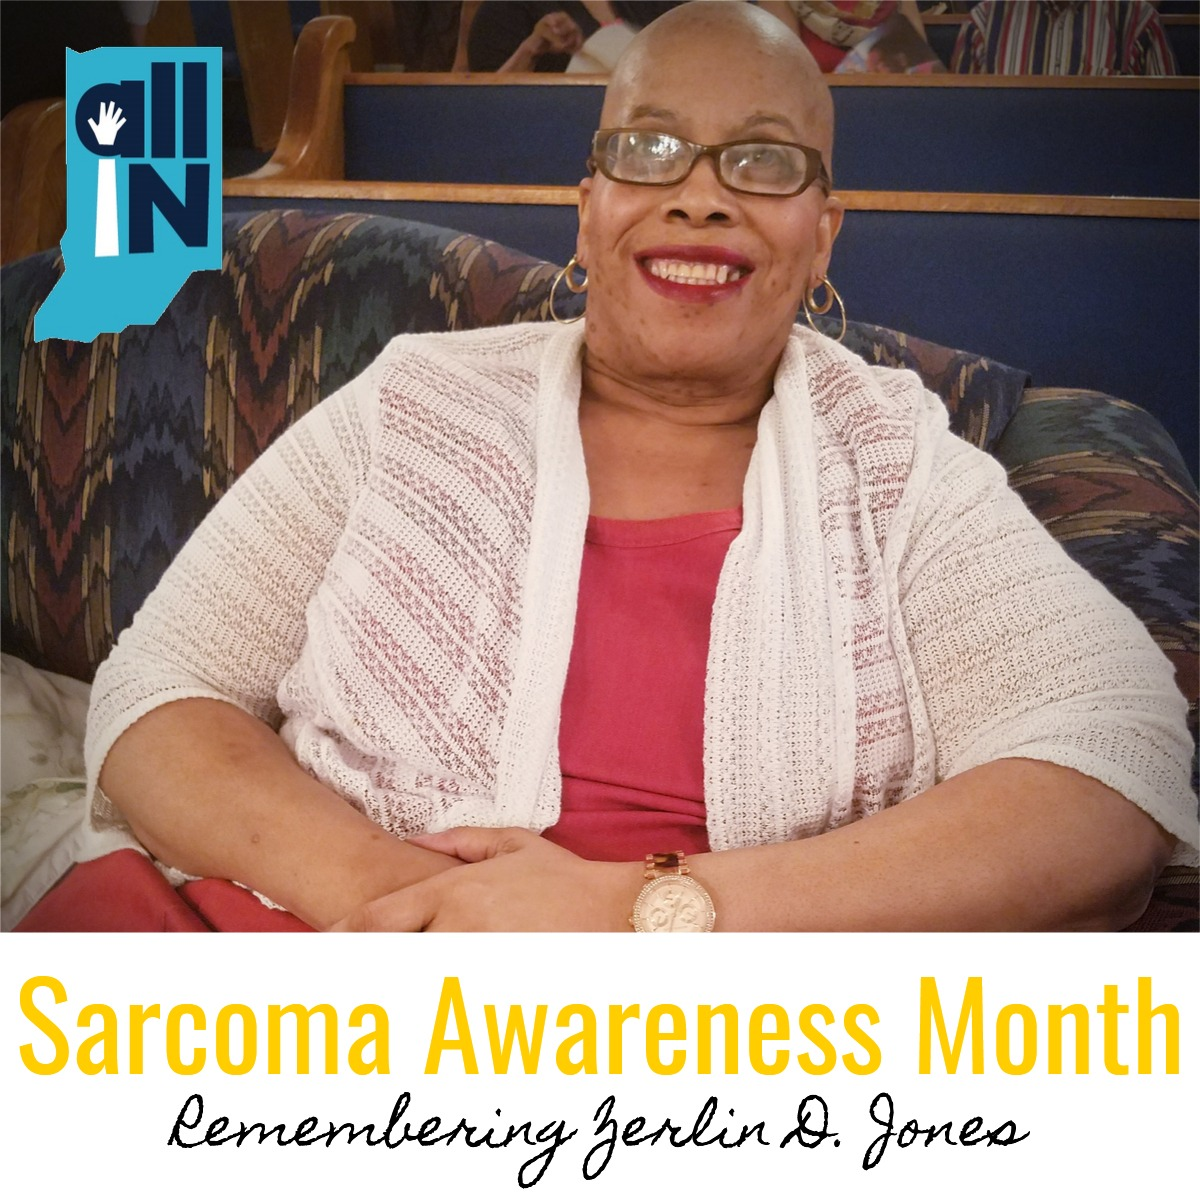 Zerlin Jones, who recently passed away from Sarcoma Cancer